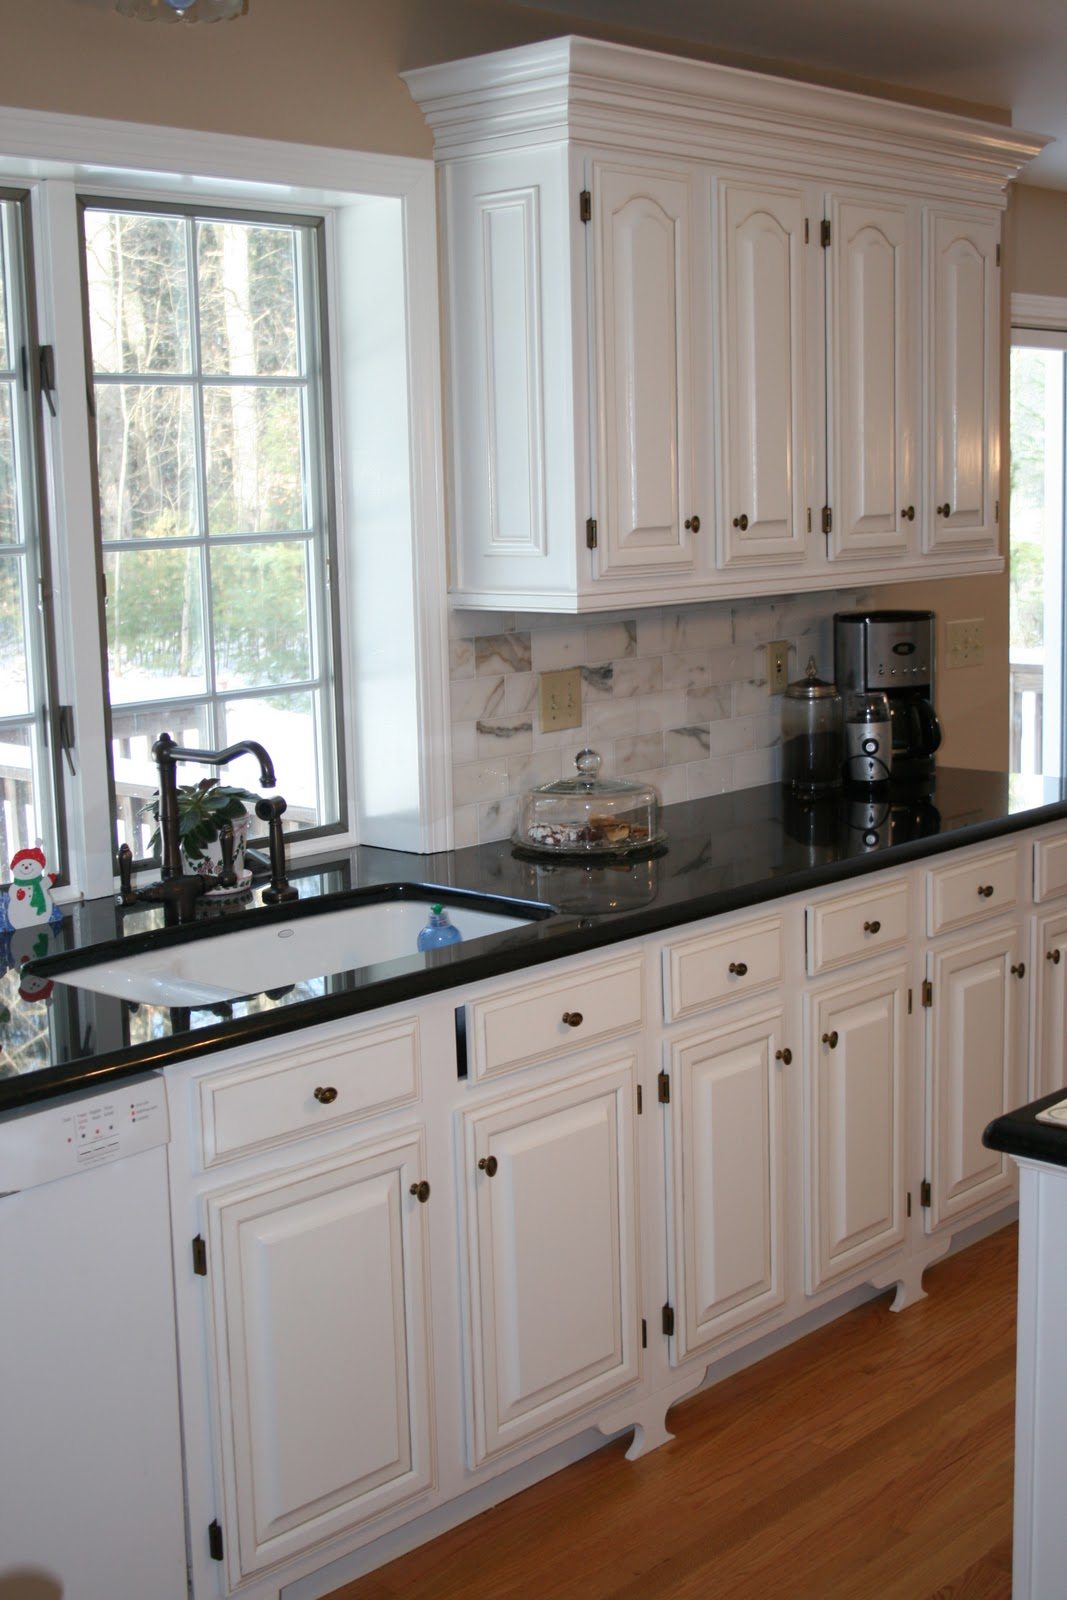 Design notes kitchen remodel completed for White or dark kitchen cabinets